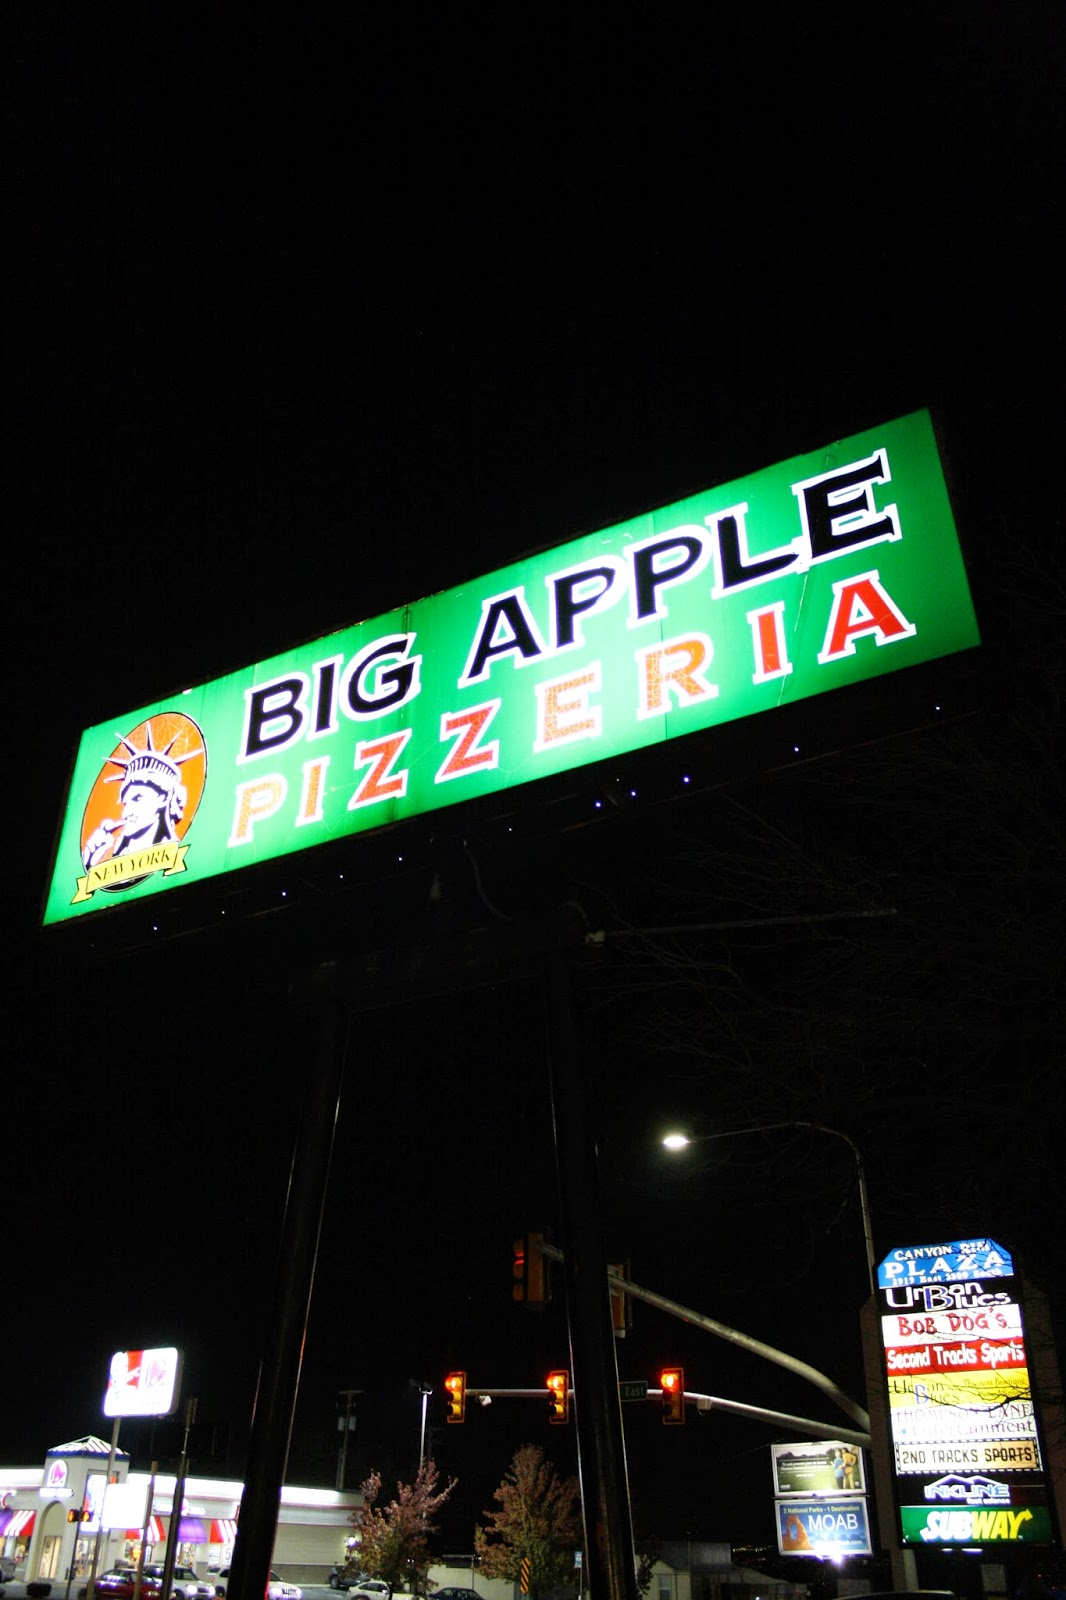 pocket of blossoms: big apple pizzeria